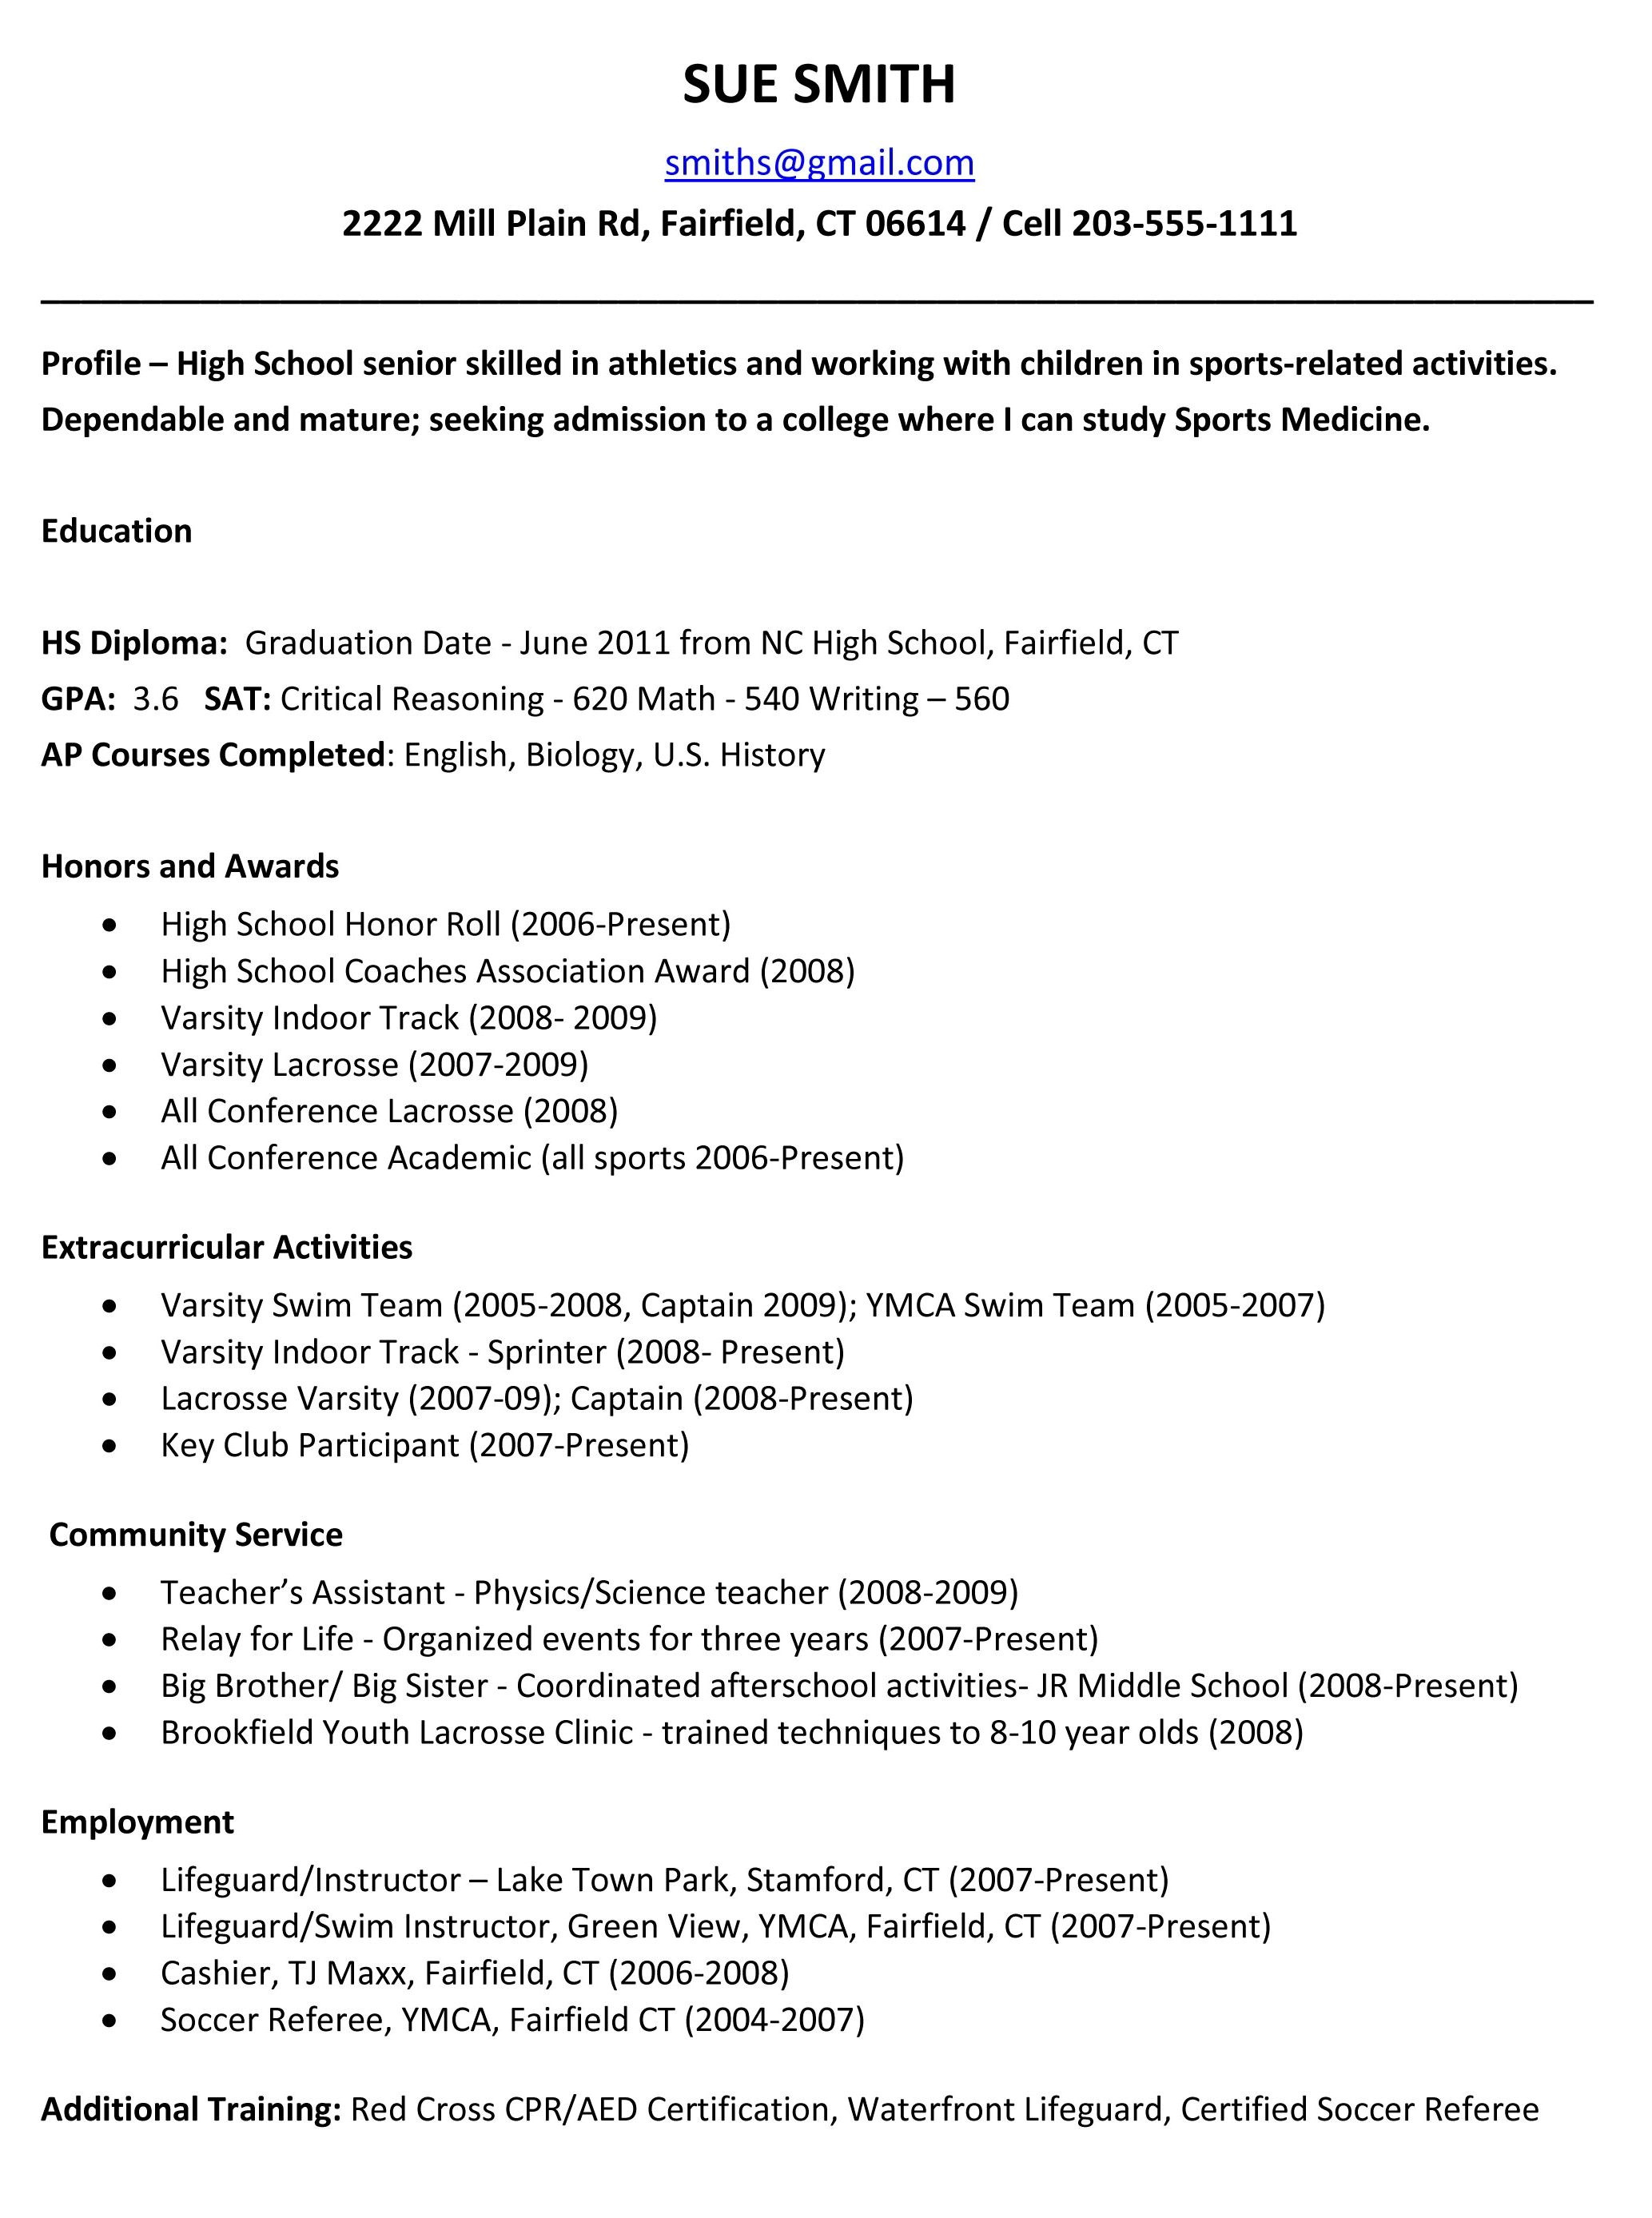 Resume Templates For Seniors In High School